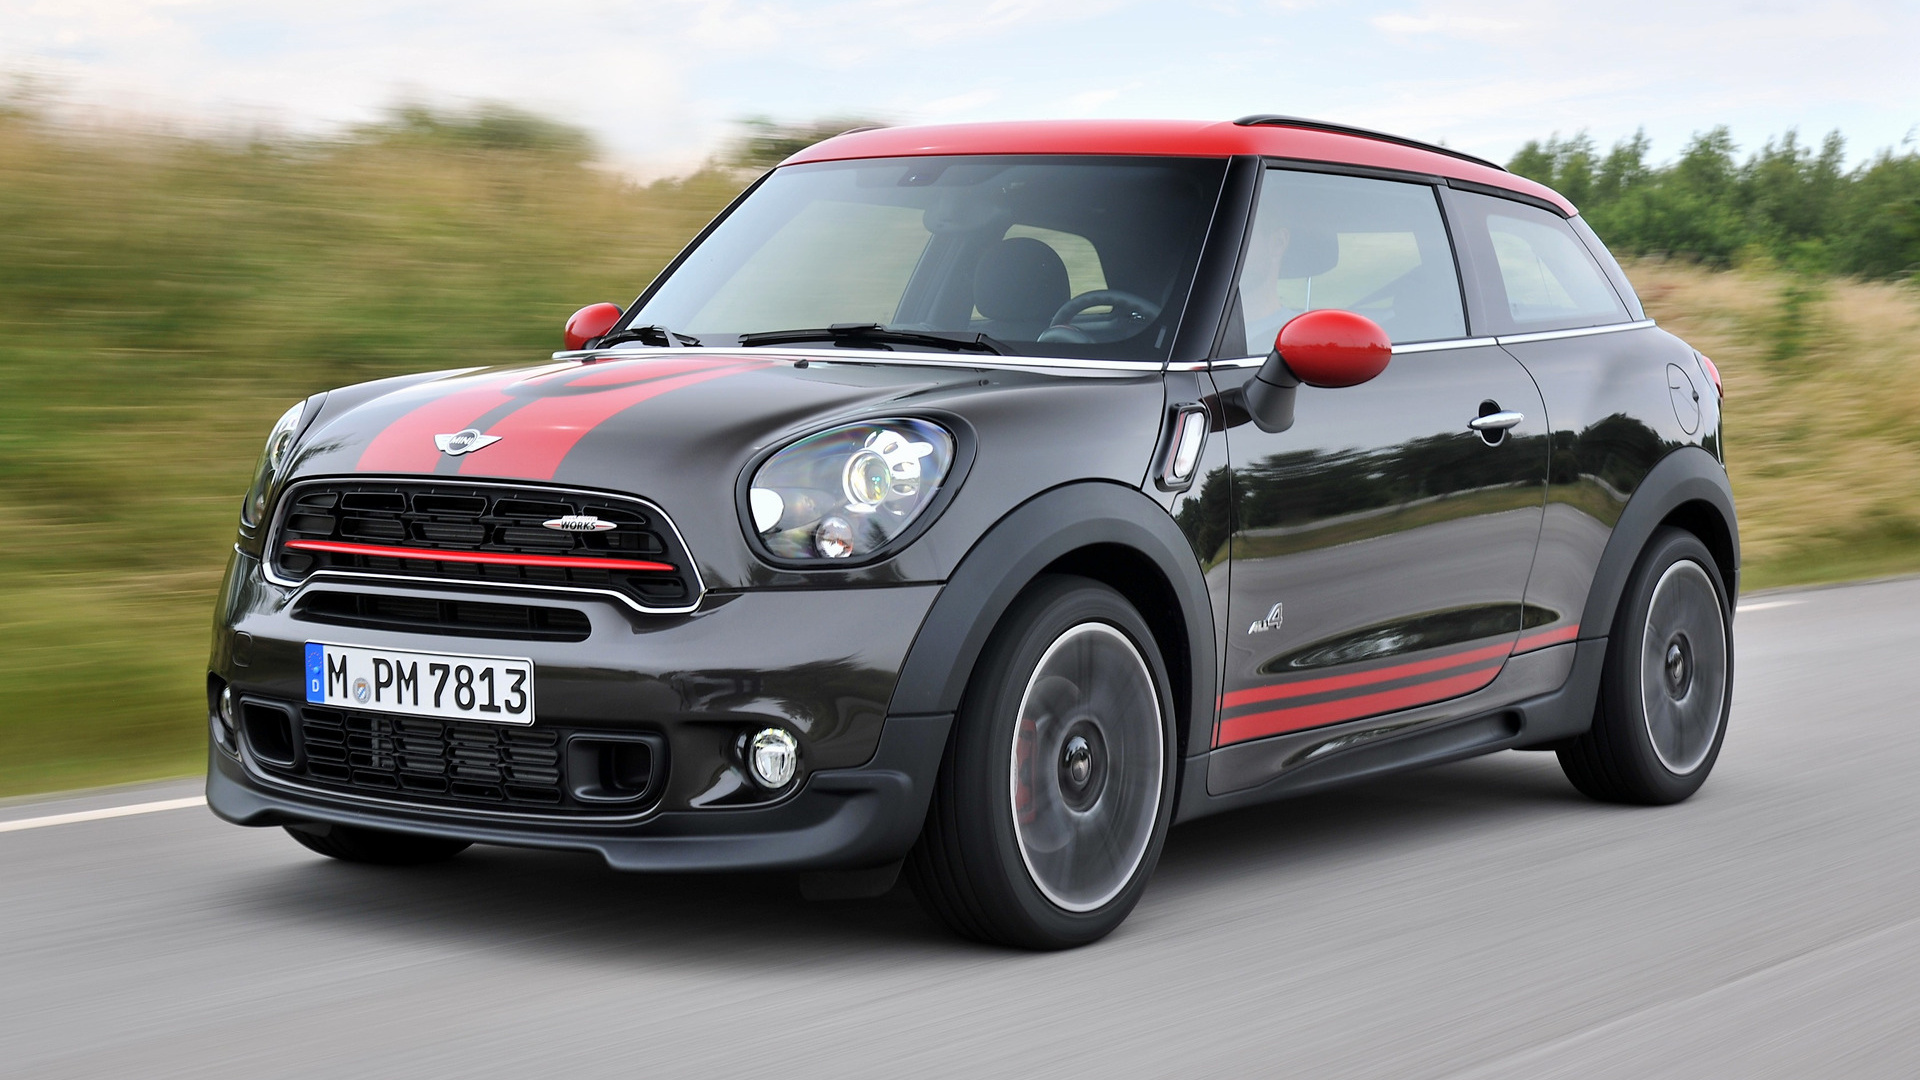 ford fiesta 2011 gas tank size with Mini Cooper John Cooper Works Paceman on 4 Mile likewise Mini Cooper John Cooper Works Paceman as well Watch together with How Big Is Gas Tank Ford Fiesta moreover Coolant System Flush Cost.